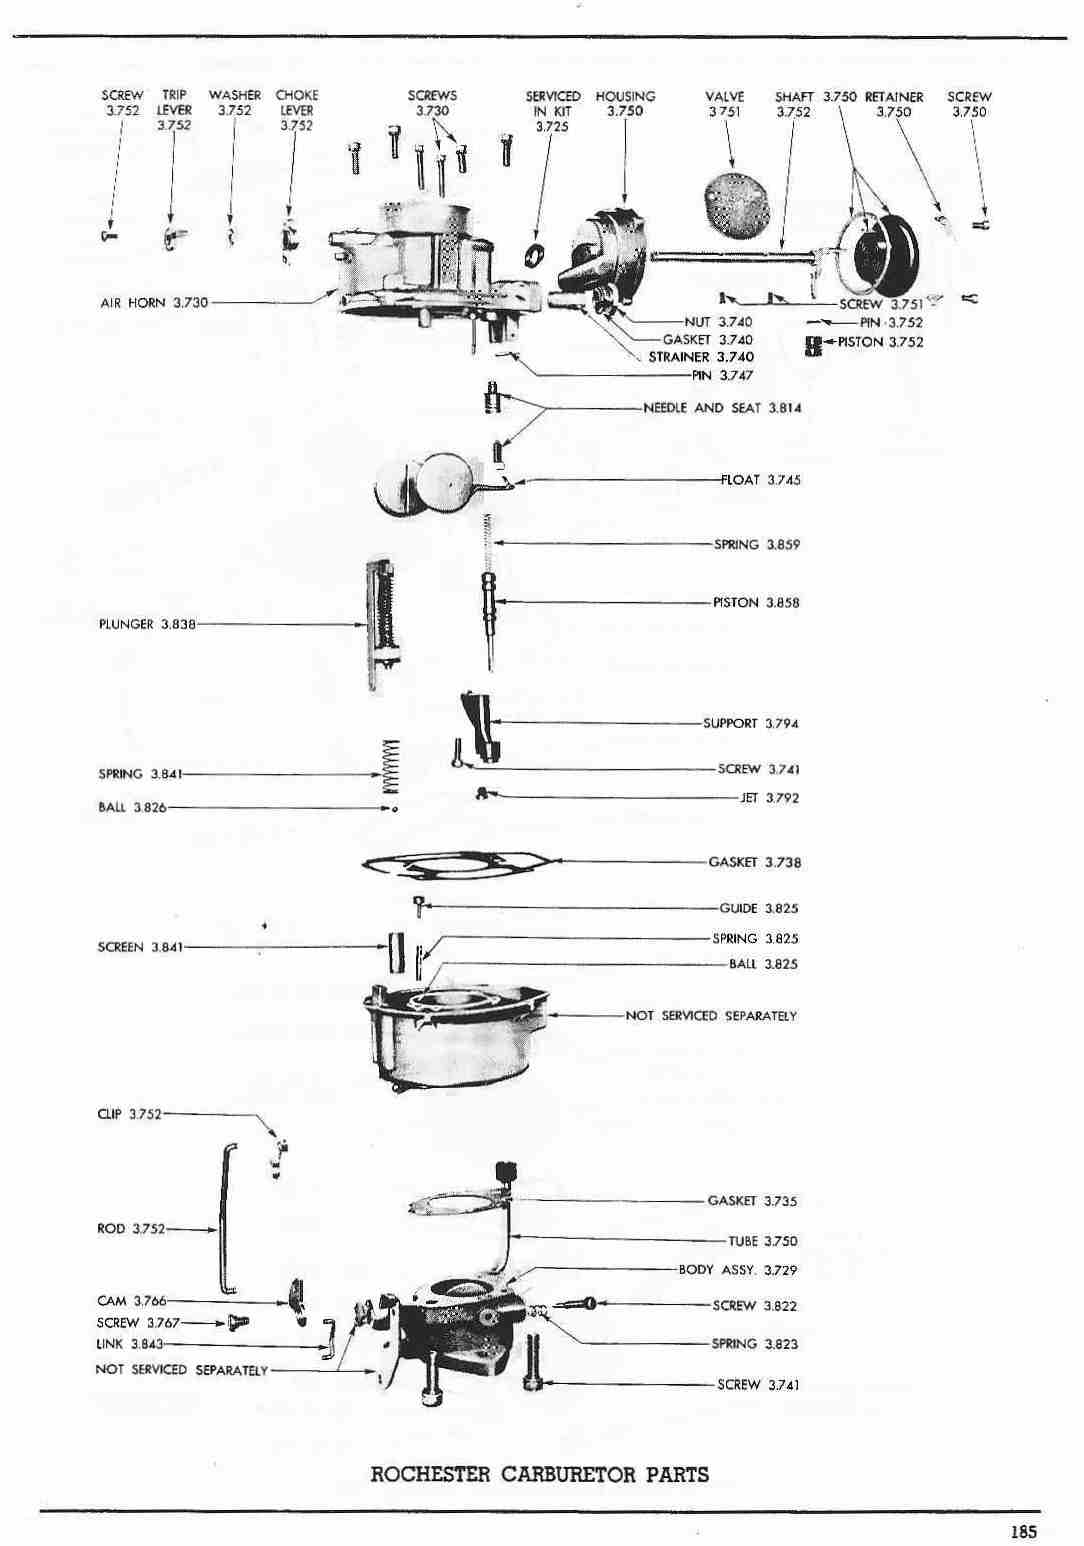 toyota engine parts diagram chevy sonic radio wiring pontiac 1960 master catalog 185 rochester carburetor one barrel